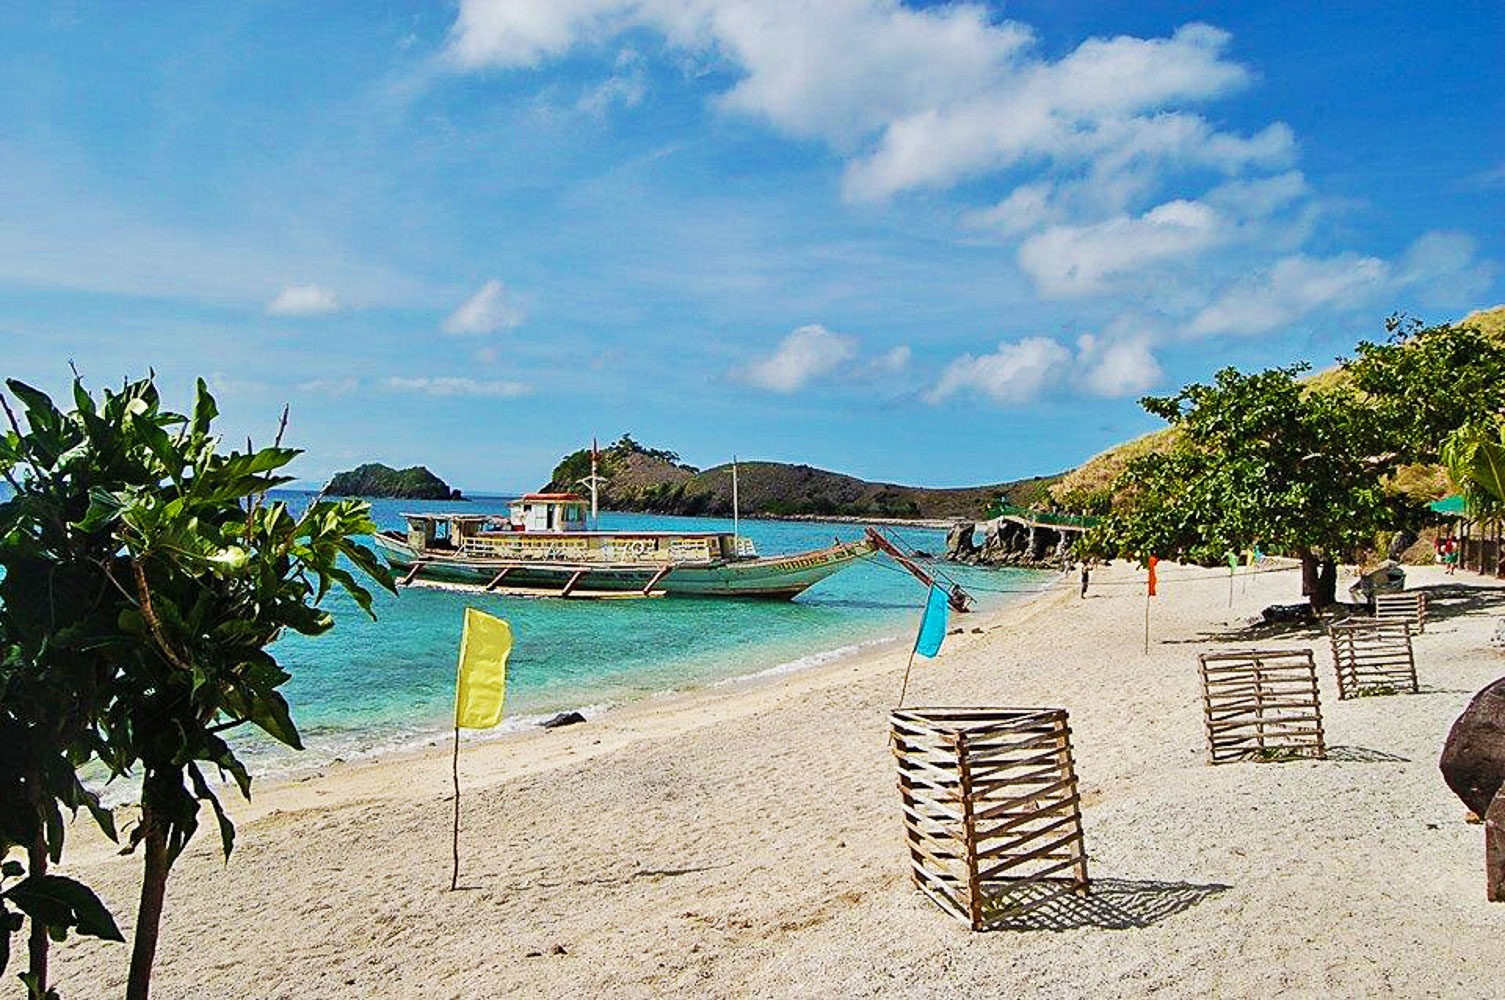 Getting to these PH beaches isn't easy – but it's worth it